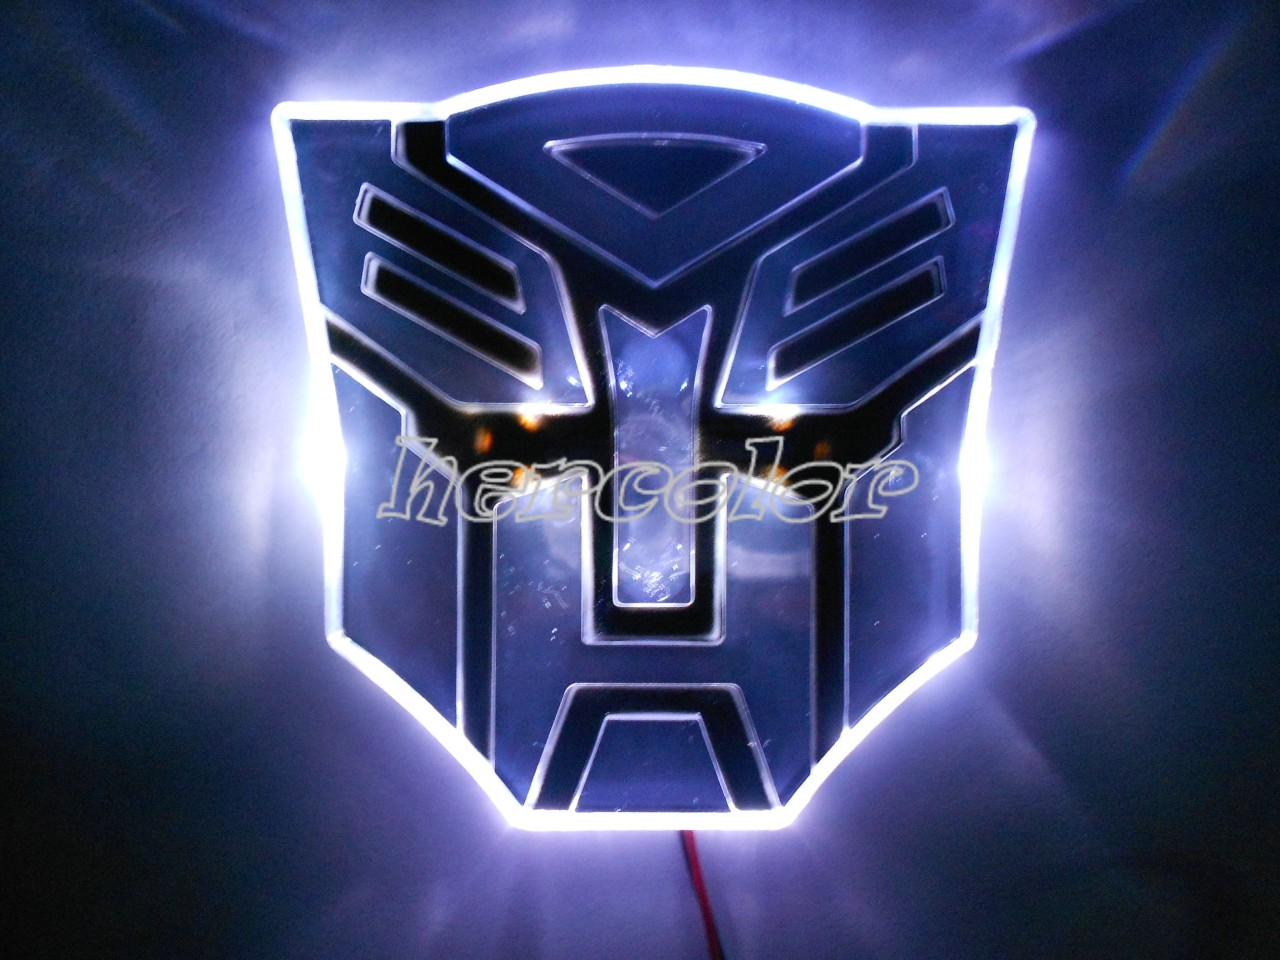 LED-Transformers-Autobot-3D-Logo-Emblem-Badge-Decal-Car-Sticker-Light